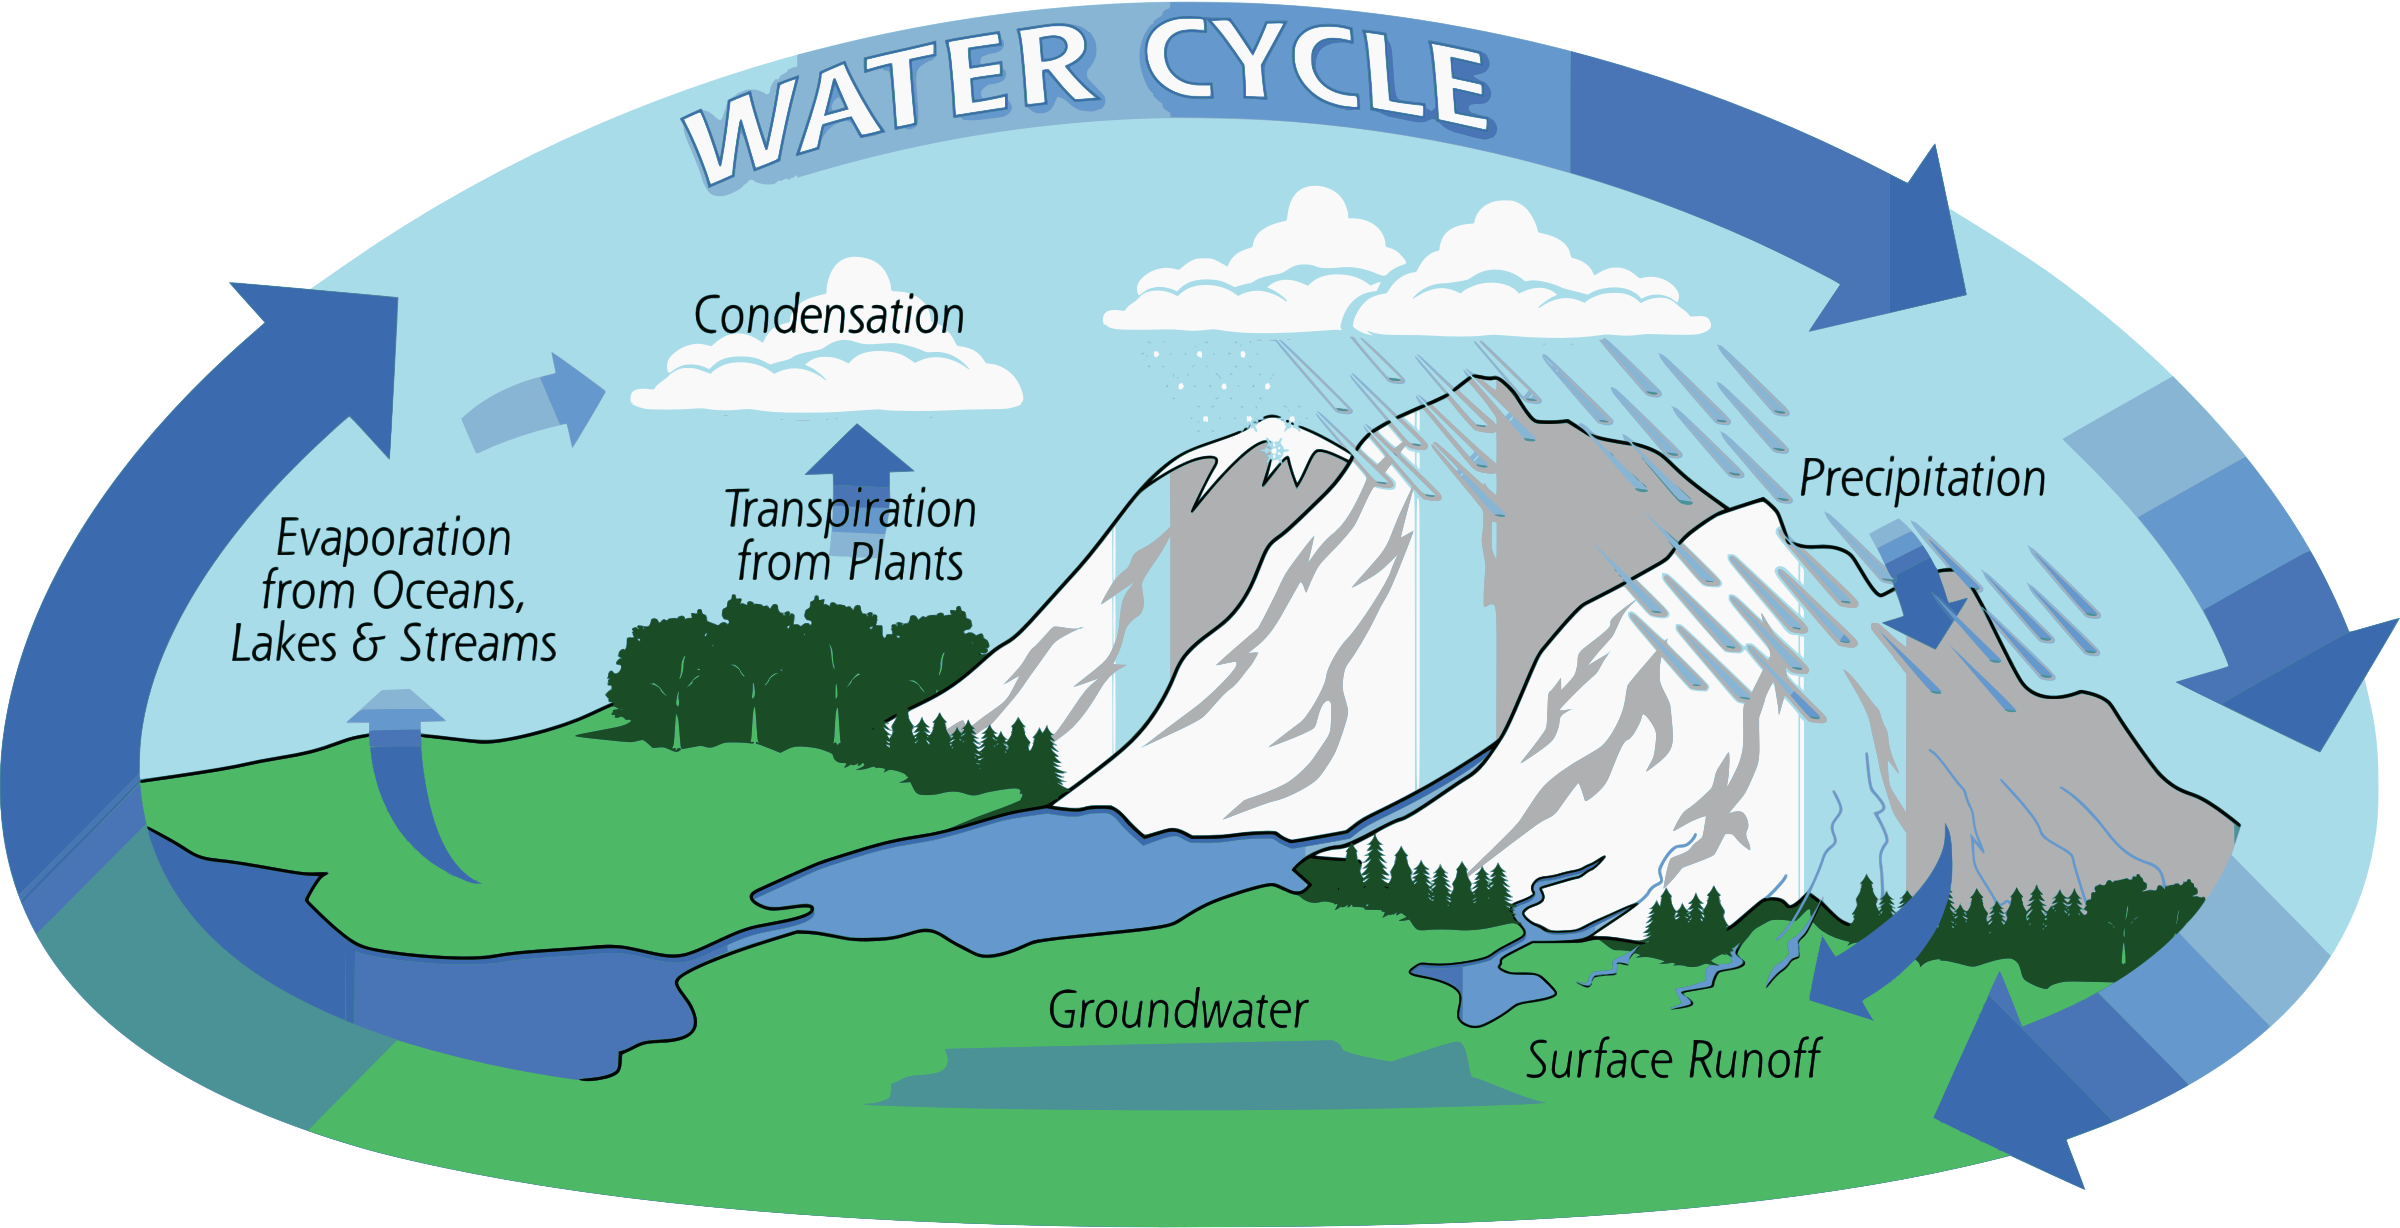 Water cycle clipart graphic transparent Clipart - Water Cycle graphic transparent